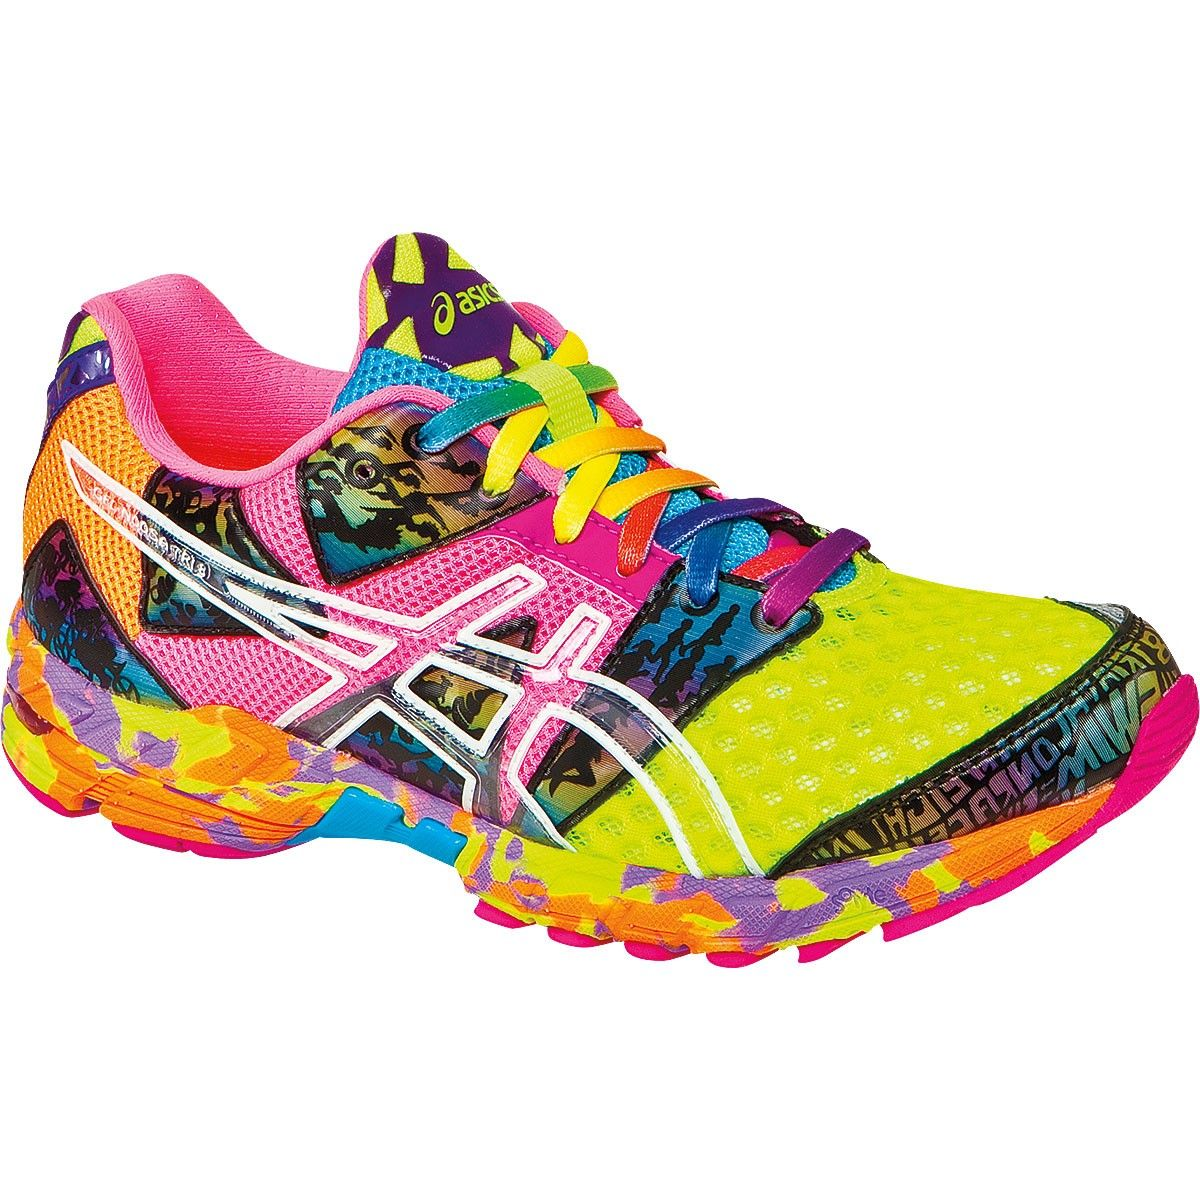 sale retailer 96f4c 47d9f Asics GEL-Noosa Tri 8 Women s Running Shoes - Black Onyx Confetti Can t  wait for these to come out!